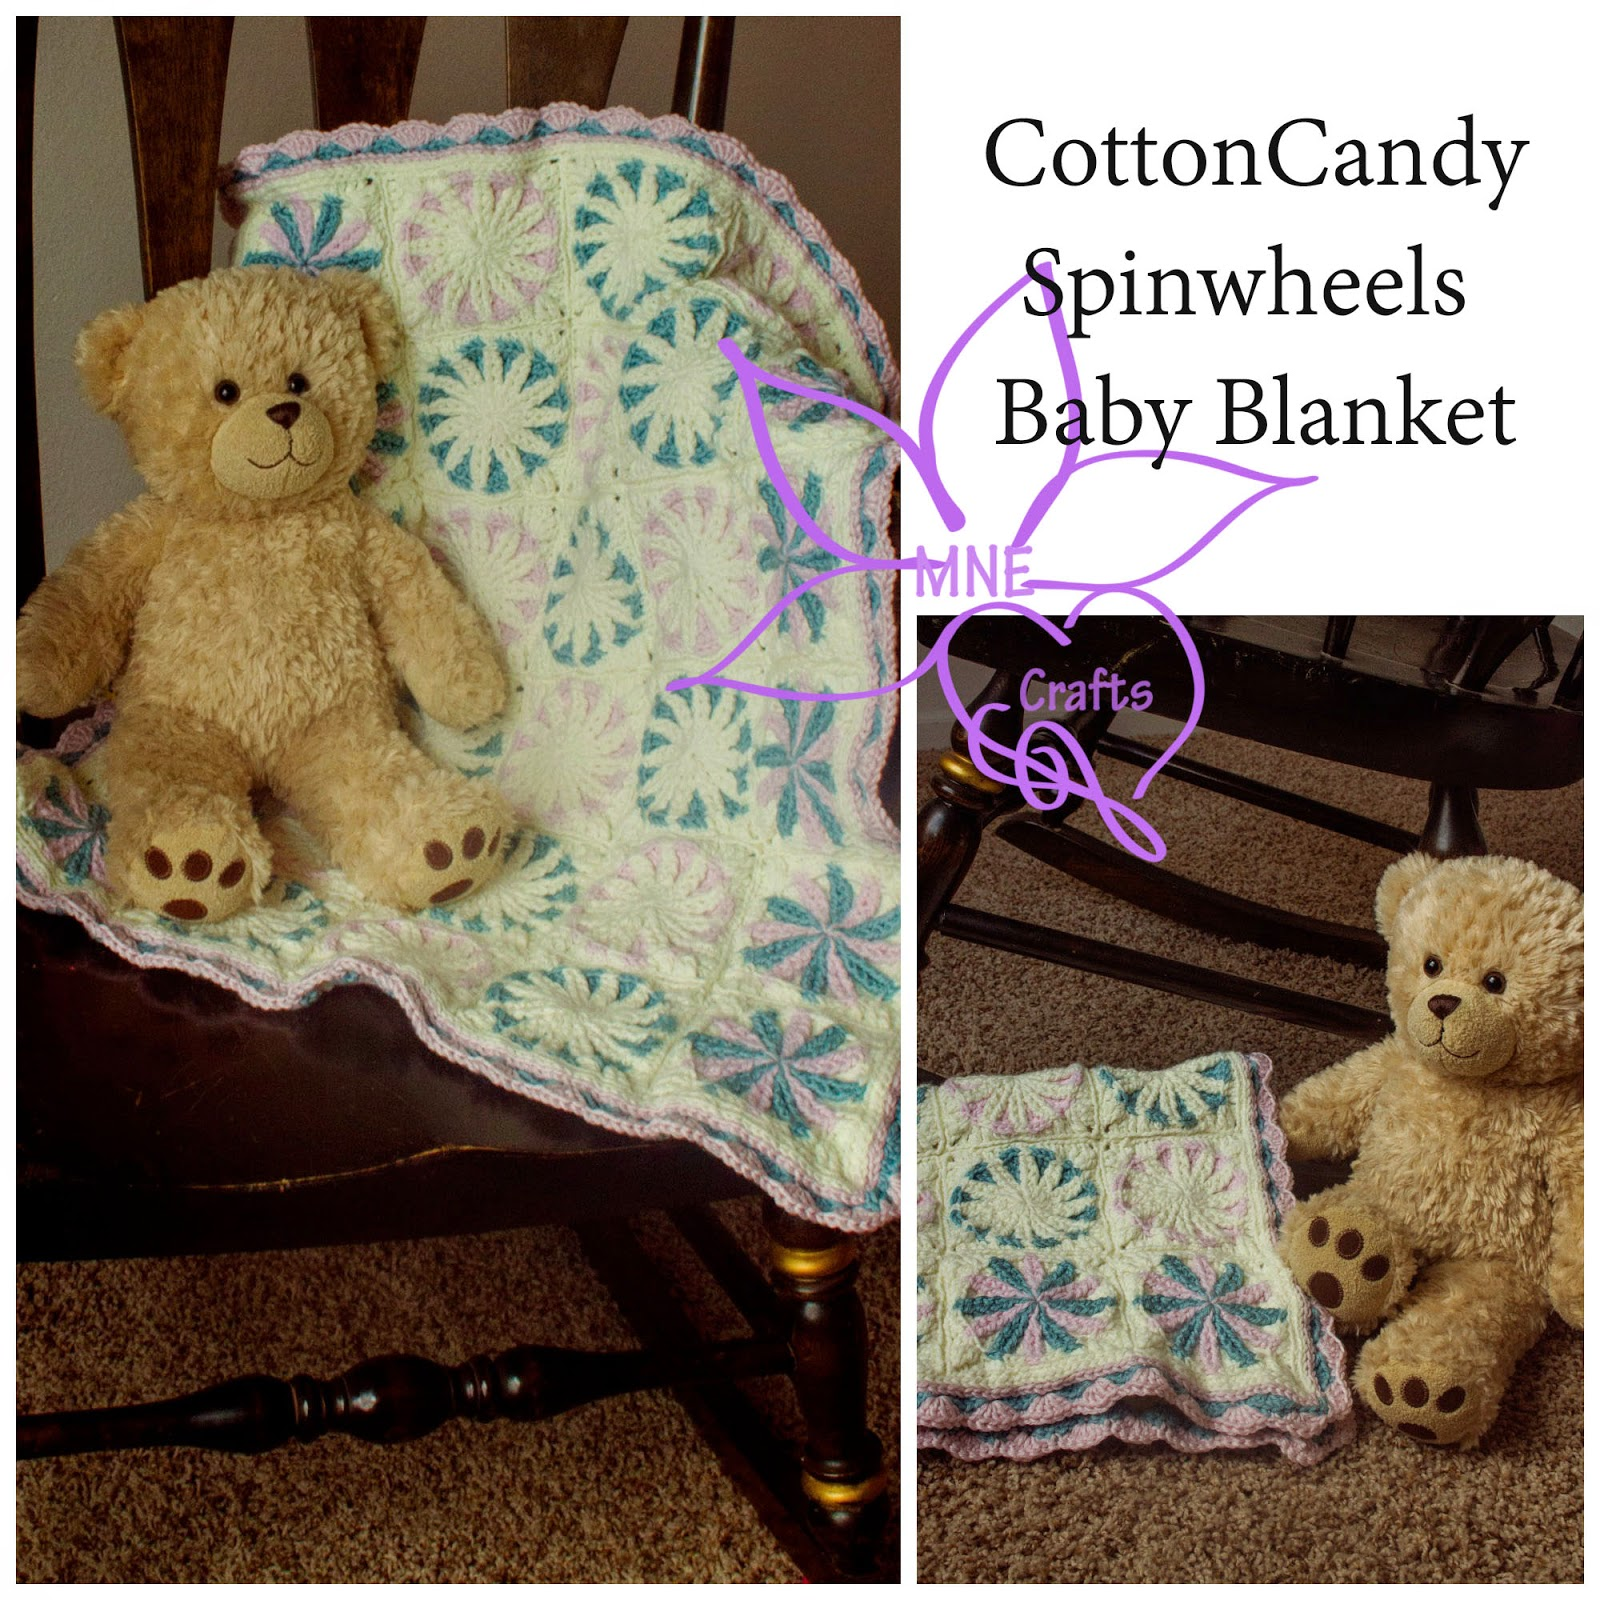 Cotton Candy Spinwheels Baby Blanket